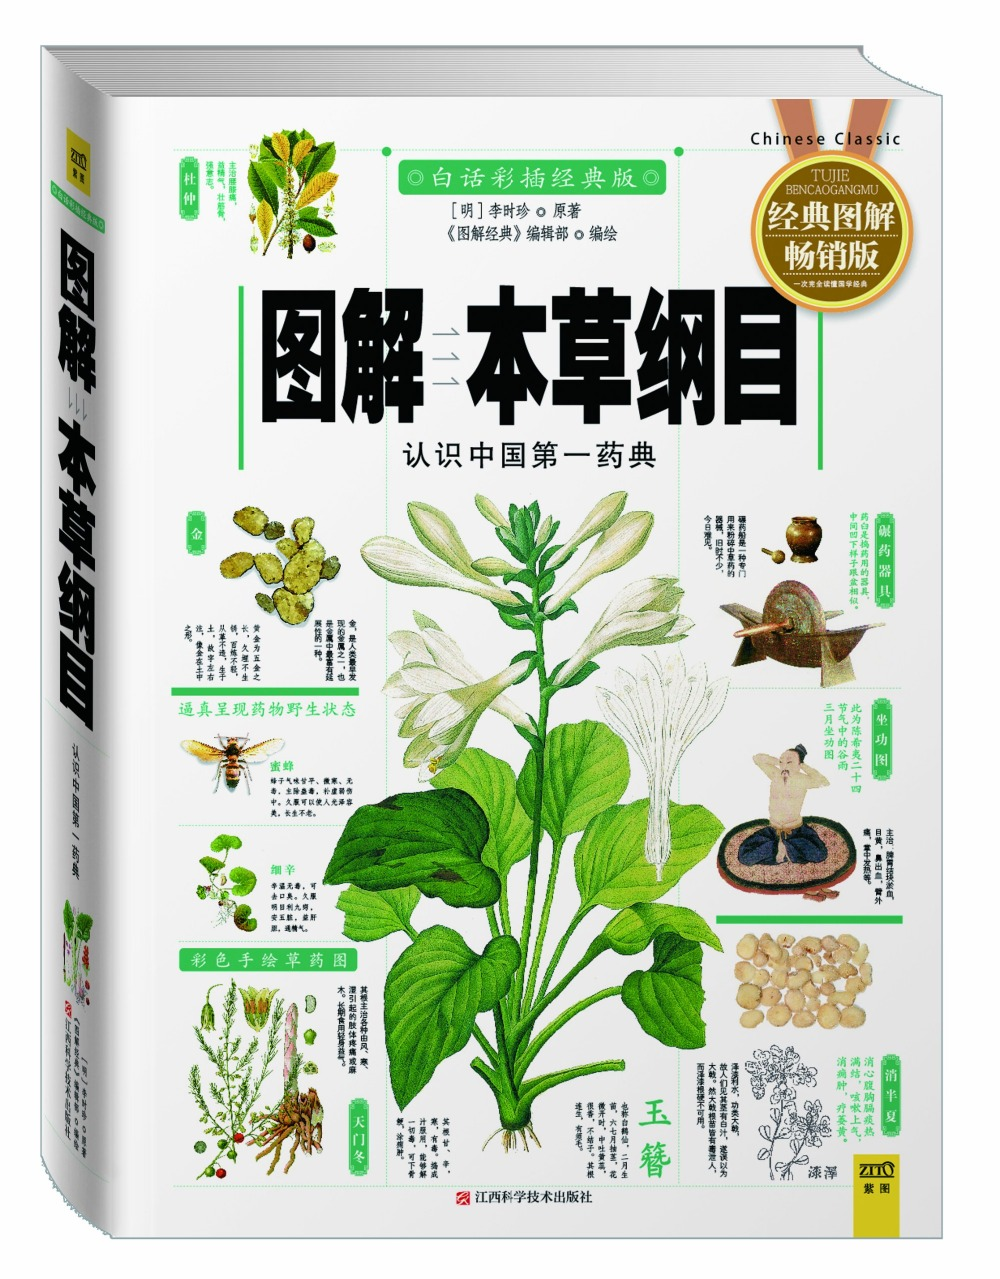 Compendium of Materia Medica Chinese Traditional herbal medicine book with pictures explained learn Chinese Health Food Science sheng nong s herbal classic chinese traditional herbal medicine book with pictures explained learn chinese health food science